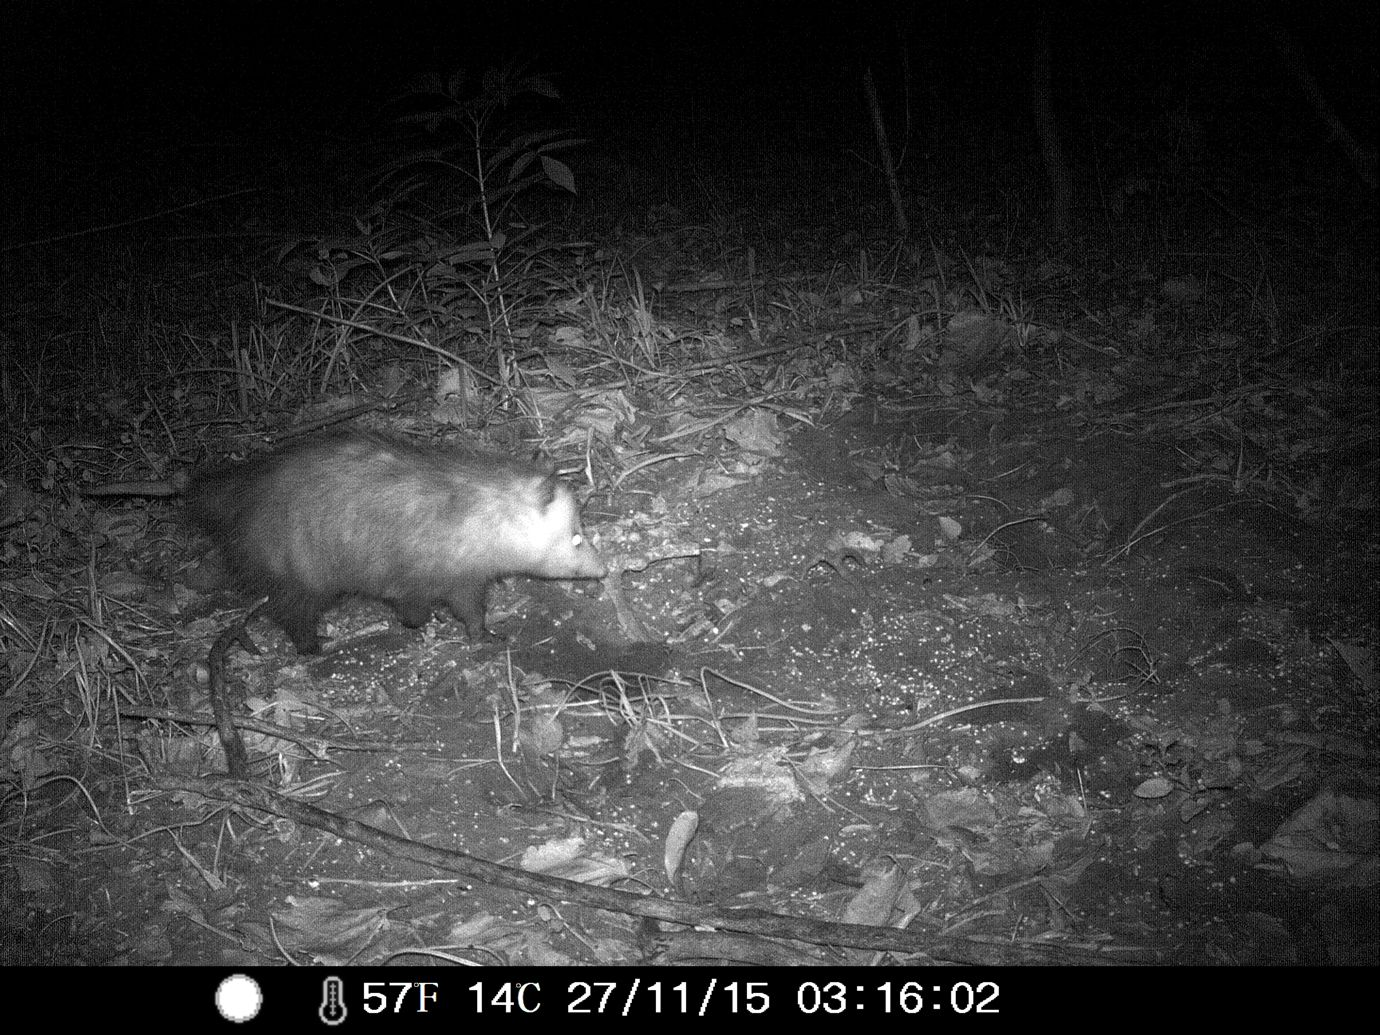 11/27/2015: I'm pretty sure this is crooked tail, my childhood opossum brother from another mother #wildlifecam